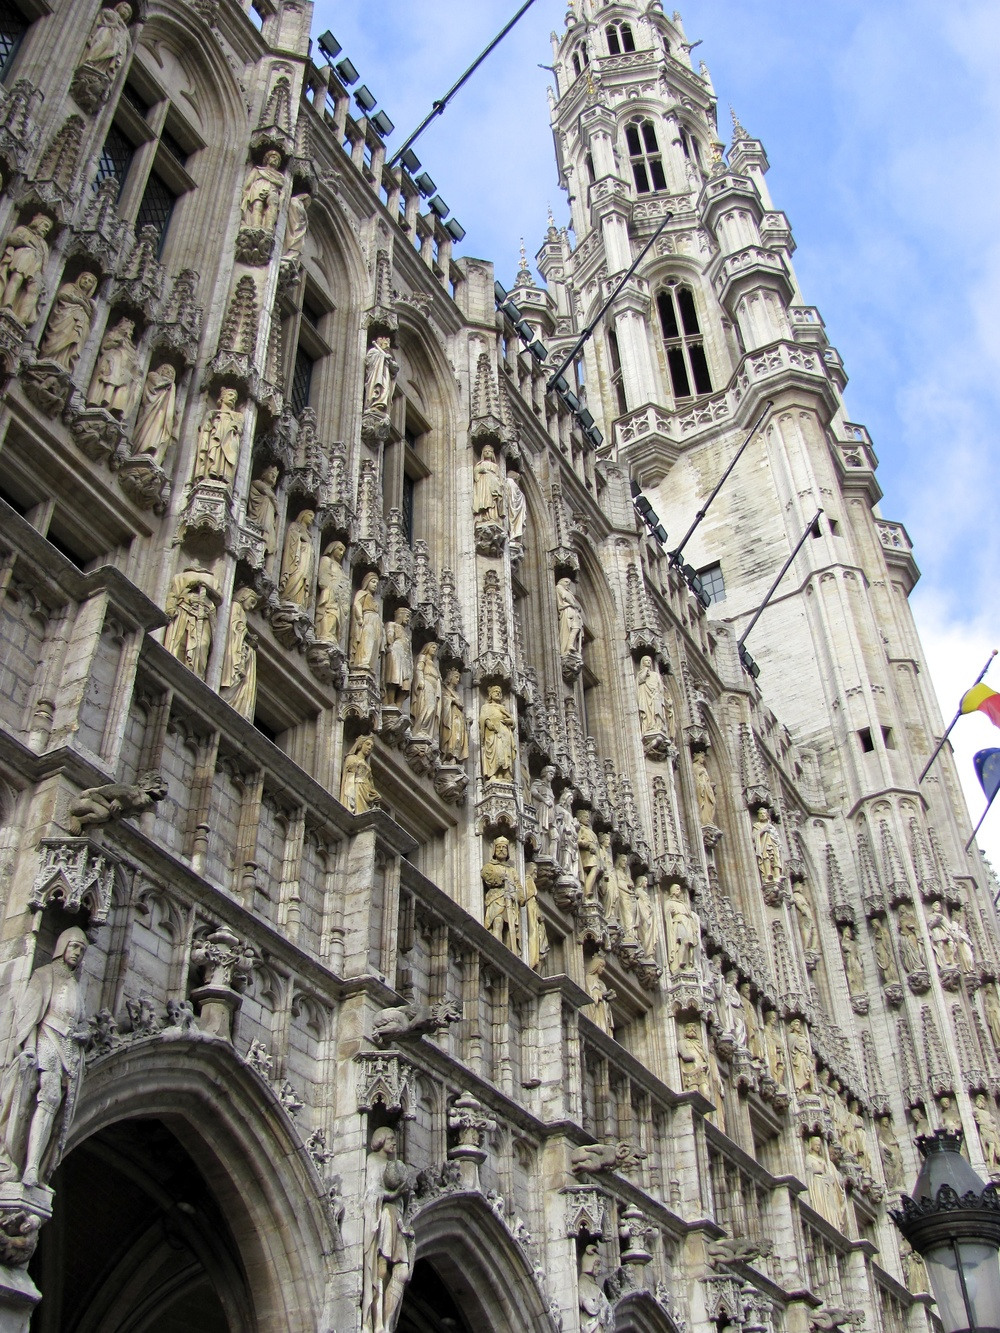 Hotel de Ville de Bruxelles - formerly Town Hall, 15th Century Gothic, Grand Place, Old City Brussels, Belgium, VHS 2010